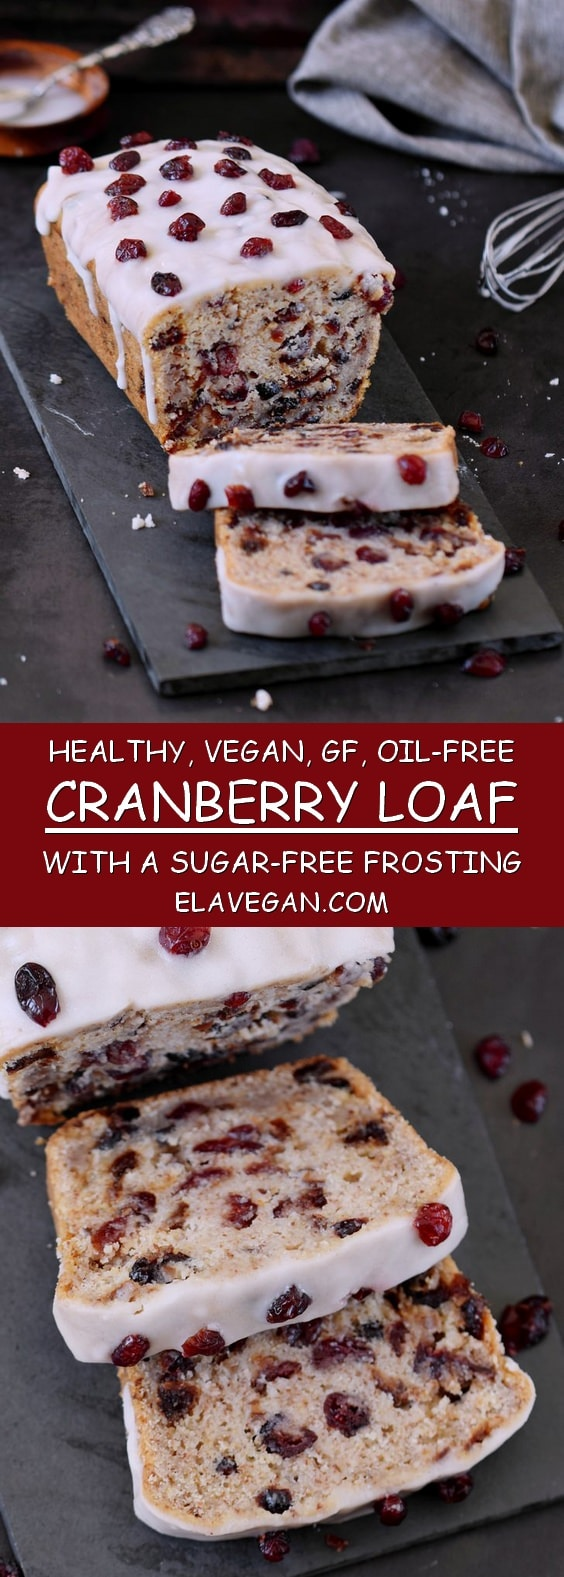 Healthy Vegan Gluten-free Oil-Free Cranberry Loaf with a healthy Sugar-Free Frosting elavegan